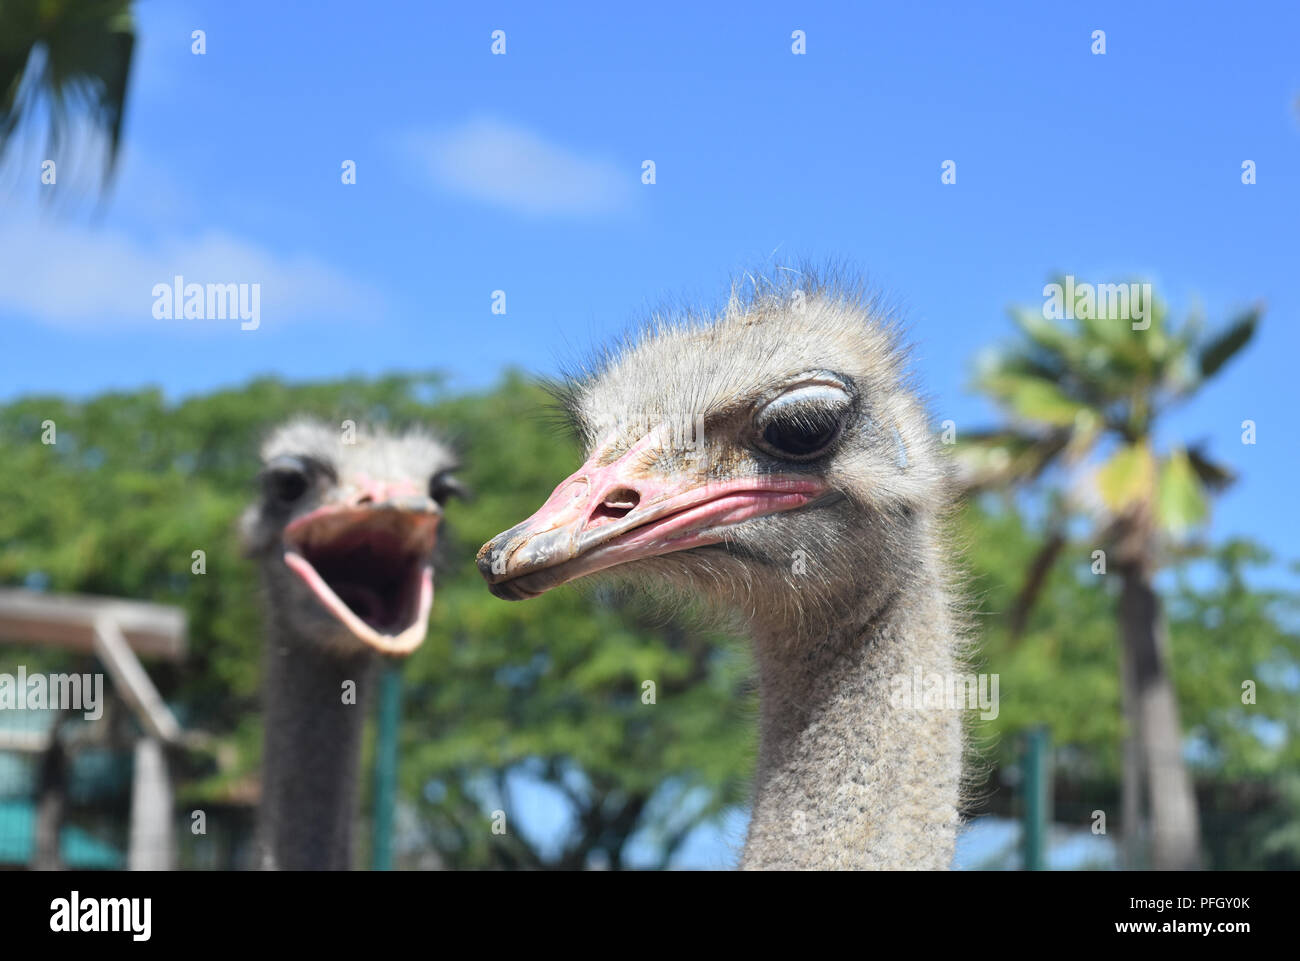 Ostrich pair, one with his beak wide open. Stock Photo